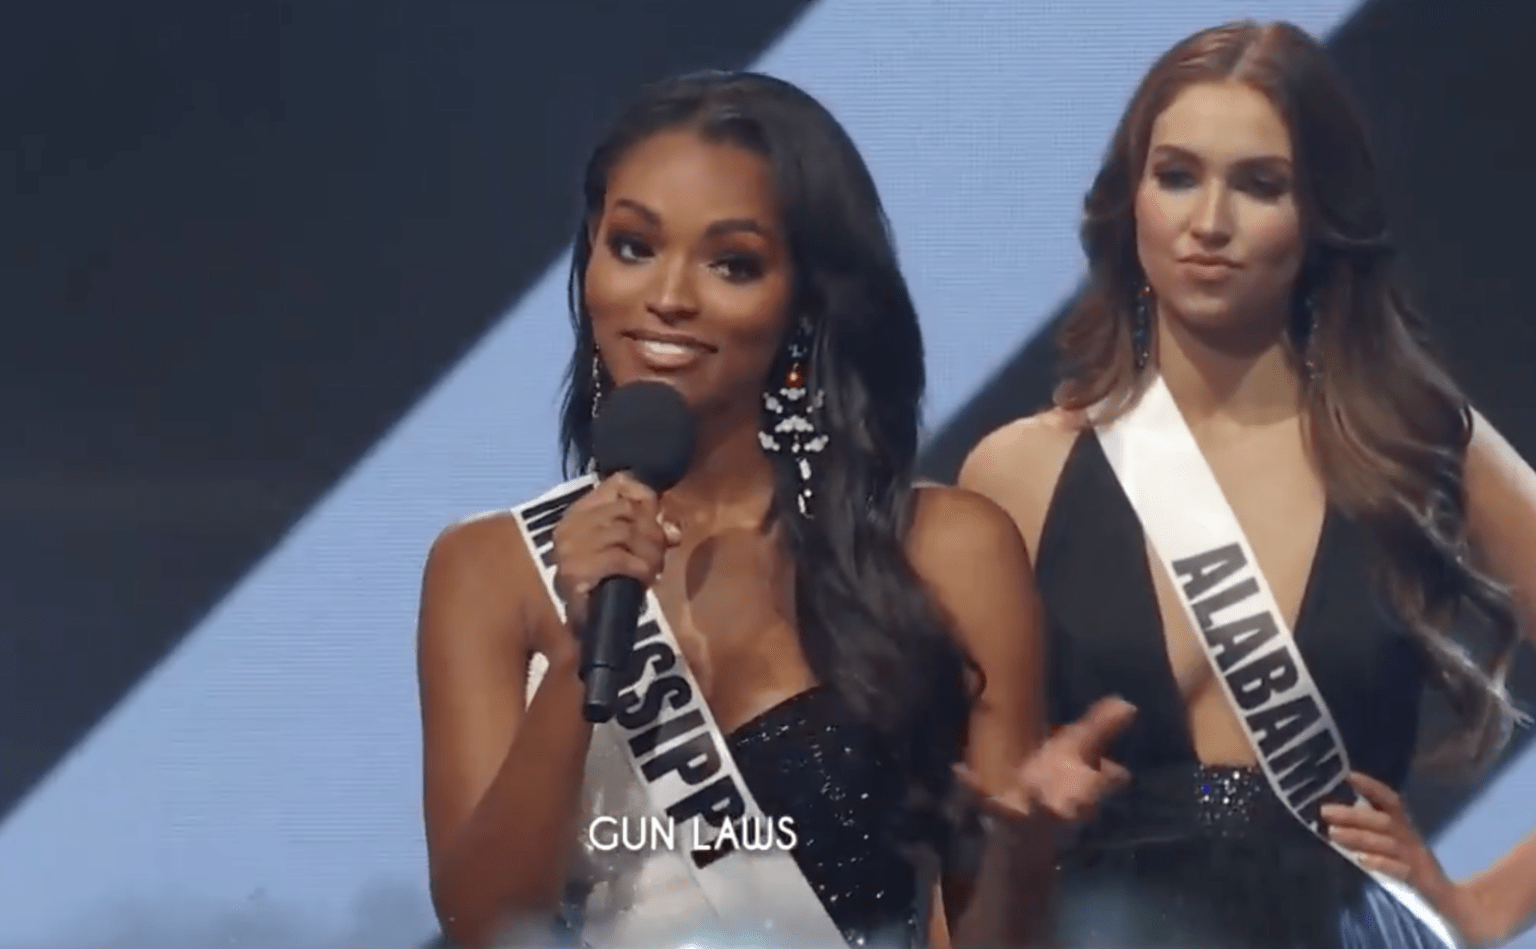 Gasp! Newly crowned Miss USA Asya Branch is a pro-gun patriot who met with President Trump